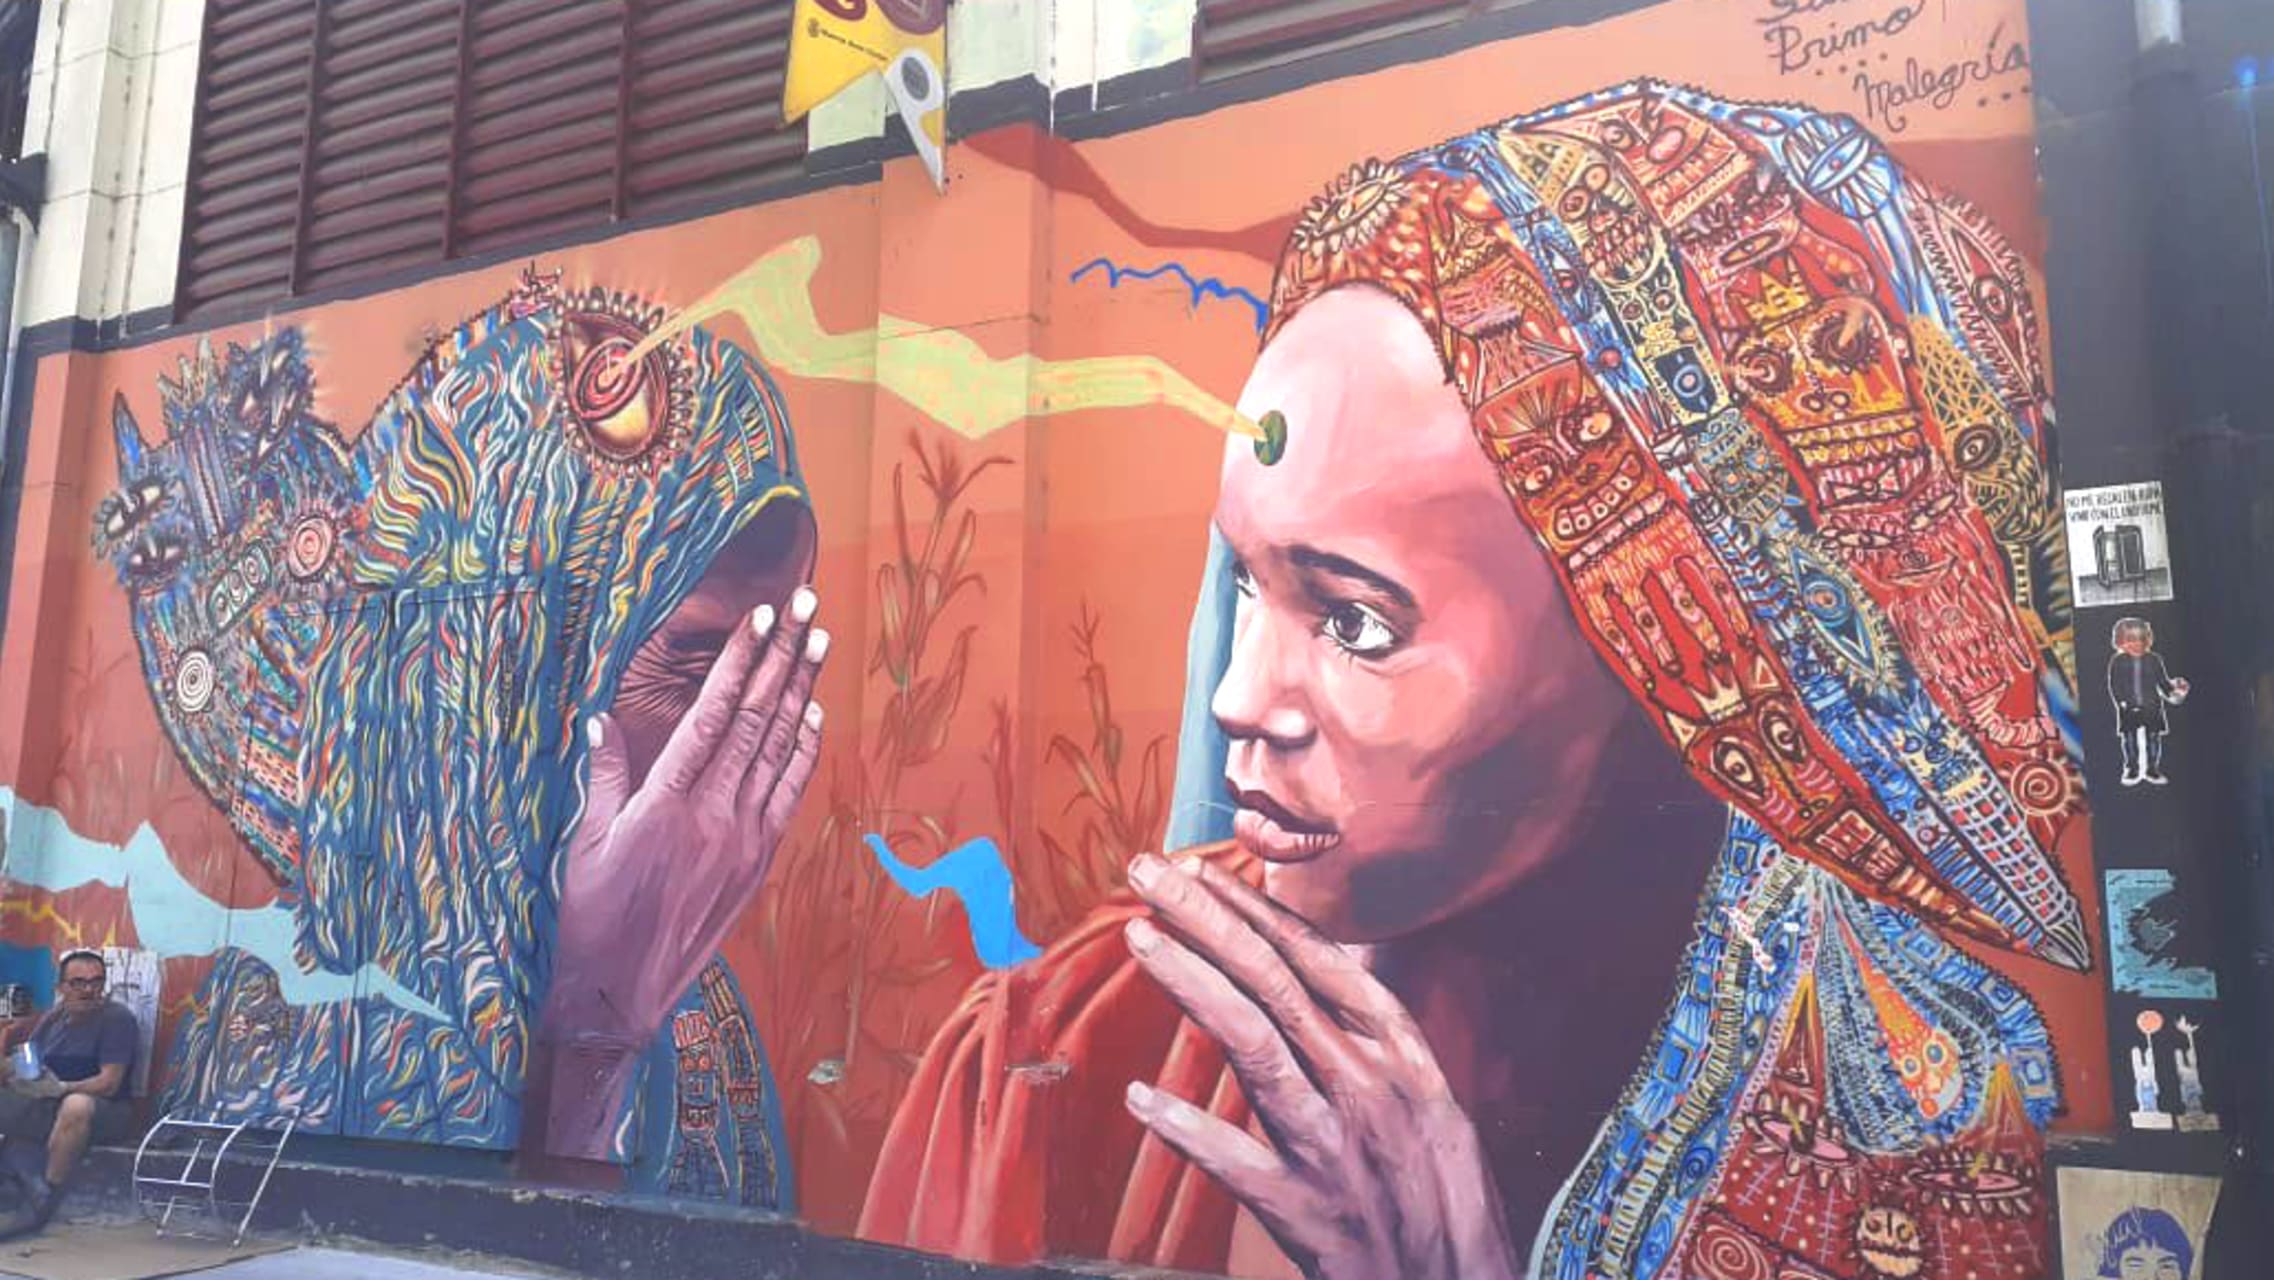 Buenos Aires - Discovering Street Art Around the Local Market